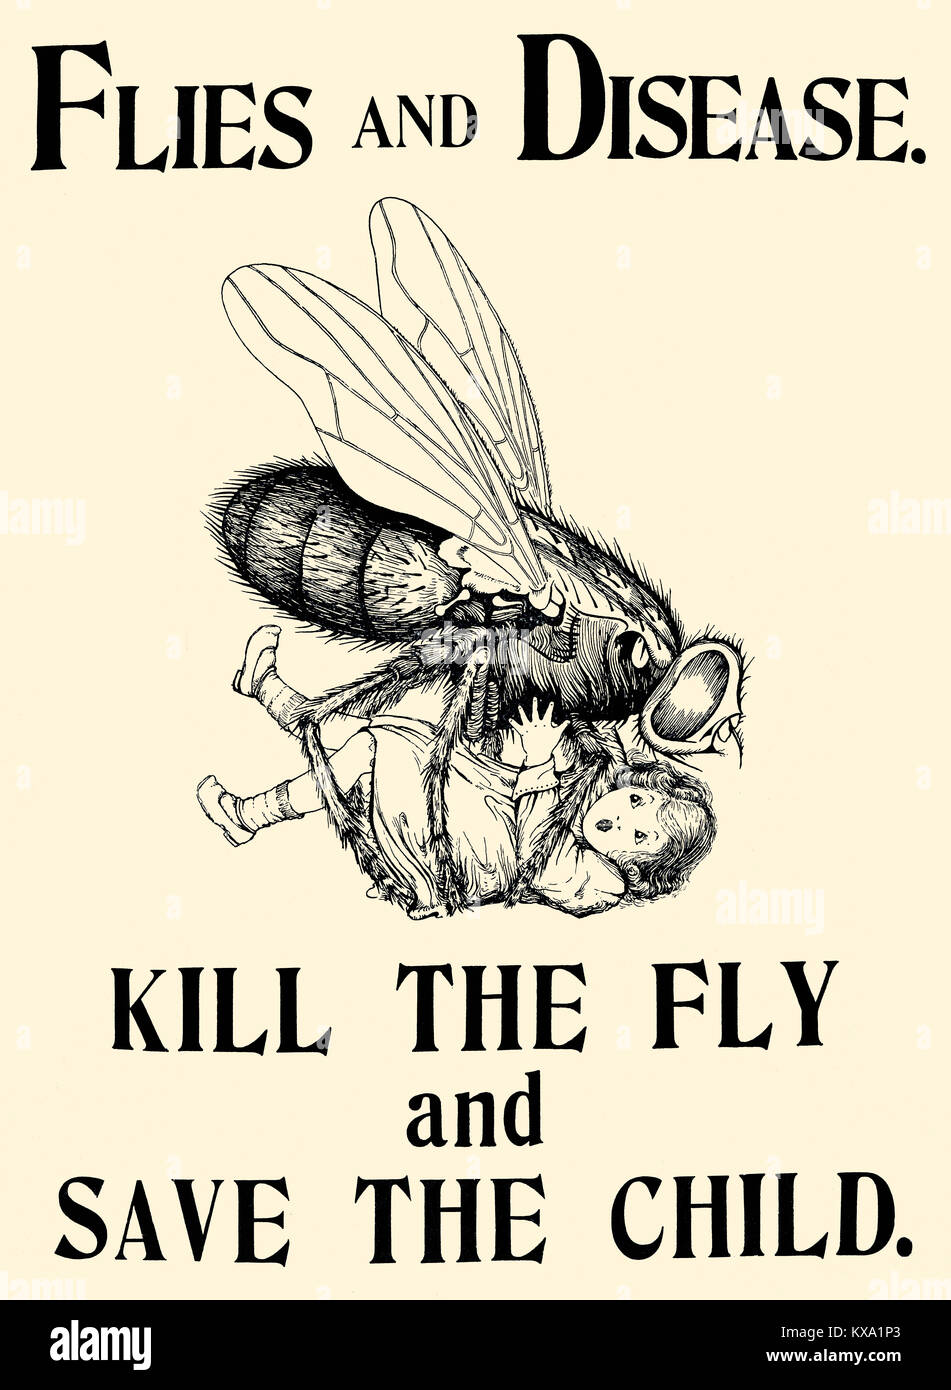 Kill The Fly and Save the Child - Stock Image